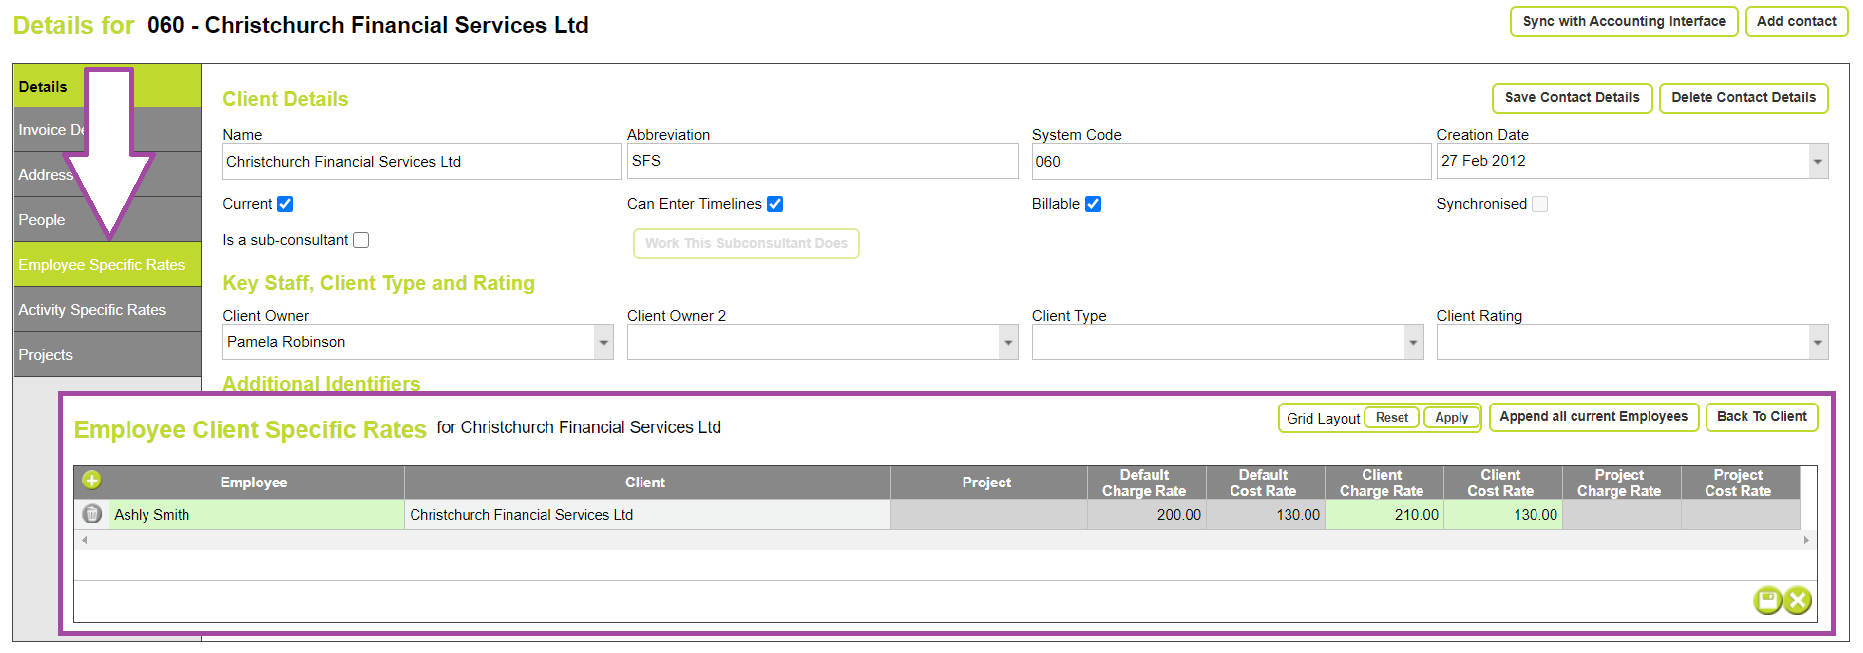 2020-09-17_details for project employee client specific rates